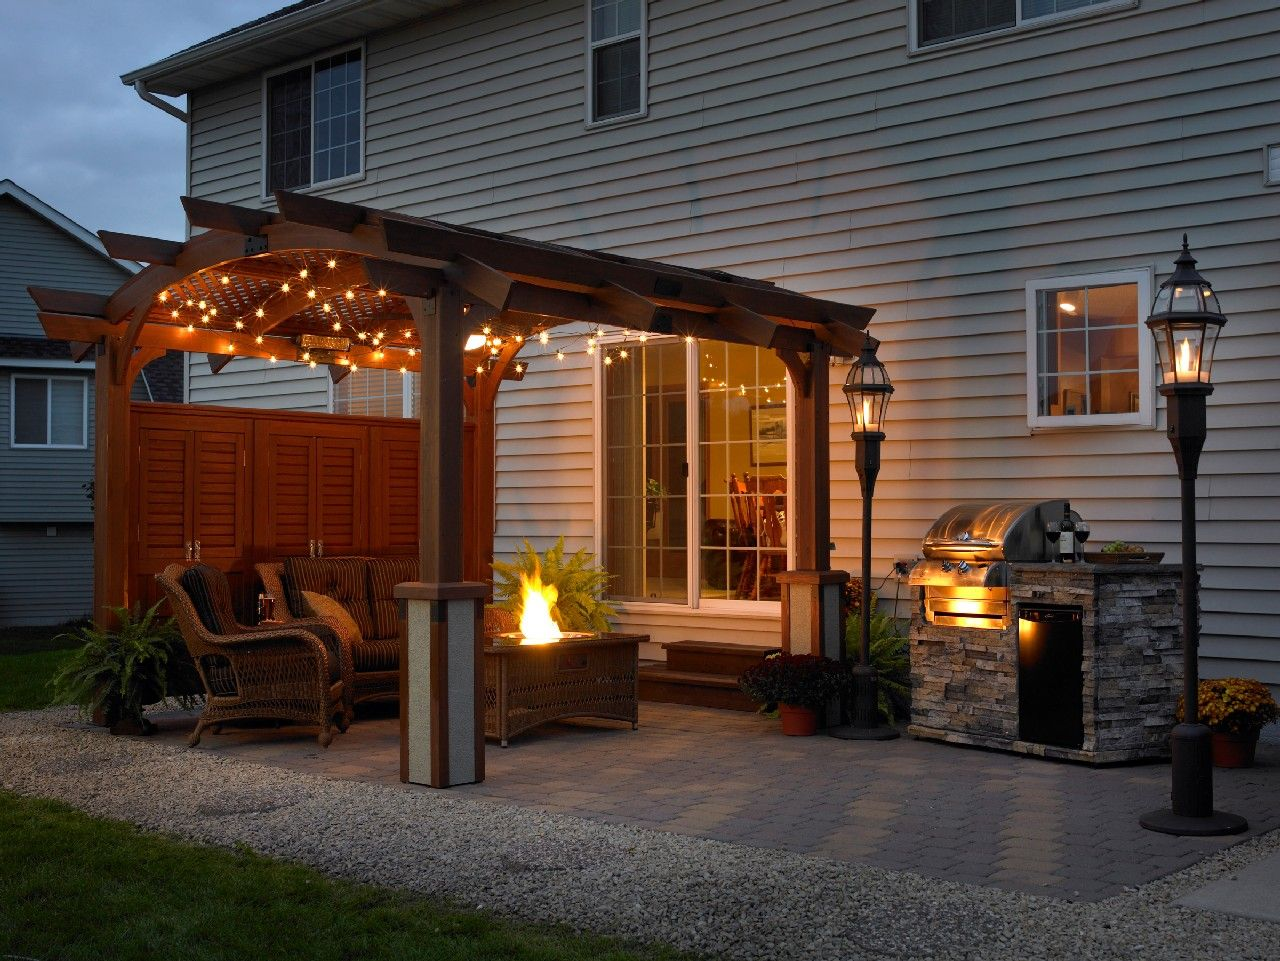 Gertens Offers Tips For Curating An Outdoor Living Space With Outdoor  Furniture, Fireplaces, And Flooring. Make Your Patio Or Yard A More Livable  Space.